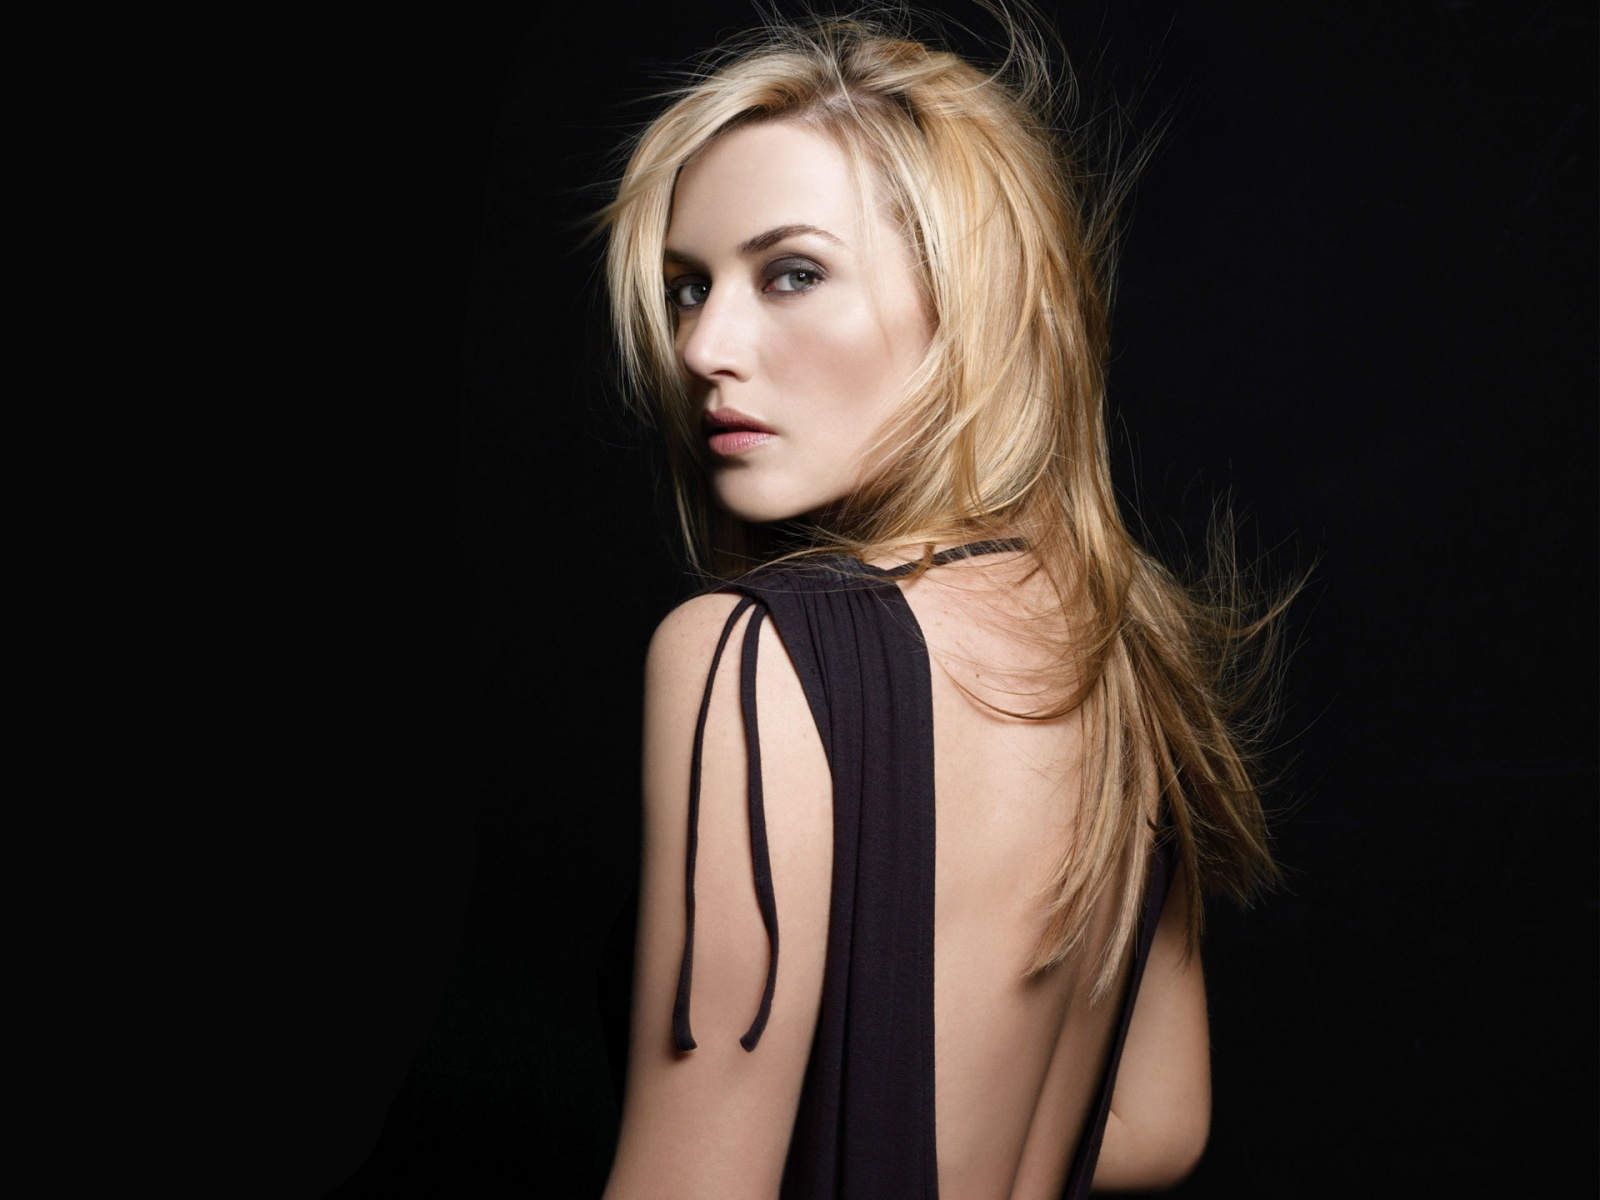 Hot Celebrity Kate Winslet Wallpapers In Jpg Format For Free Download